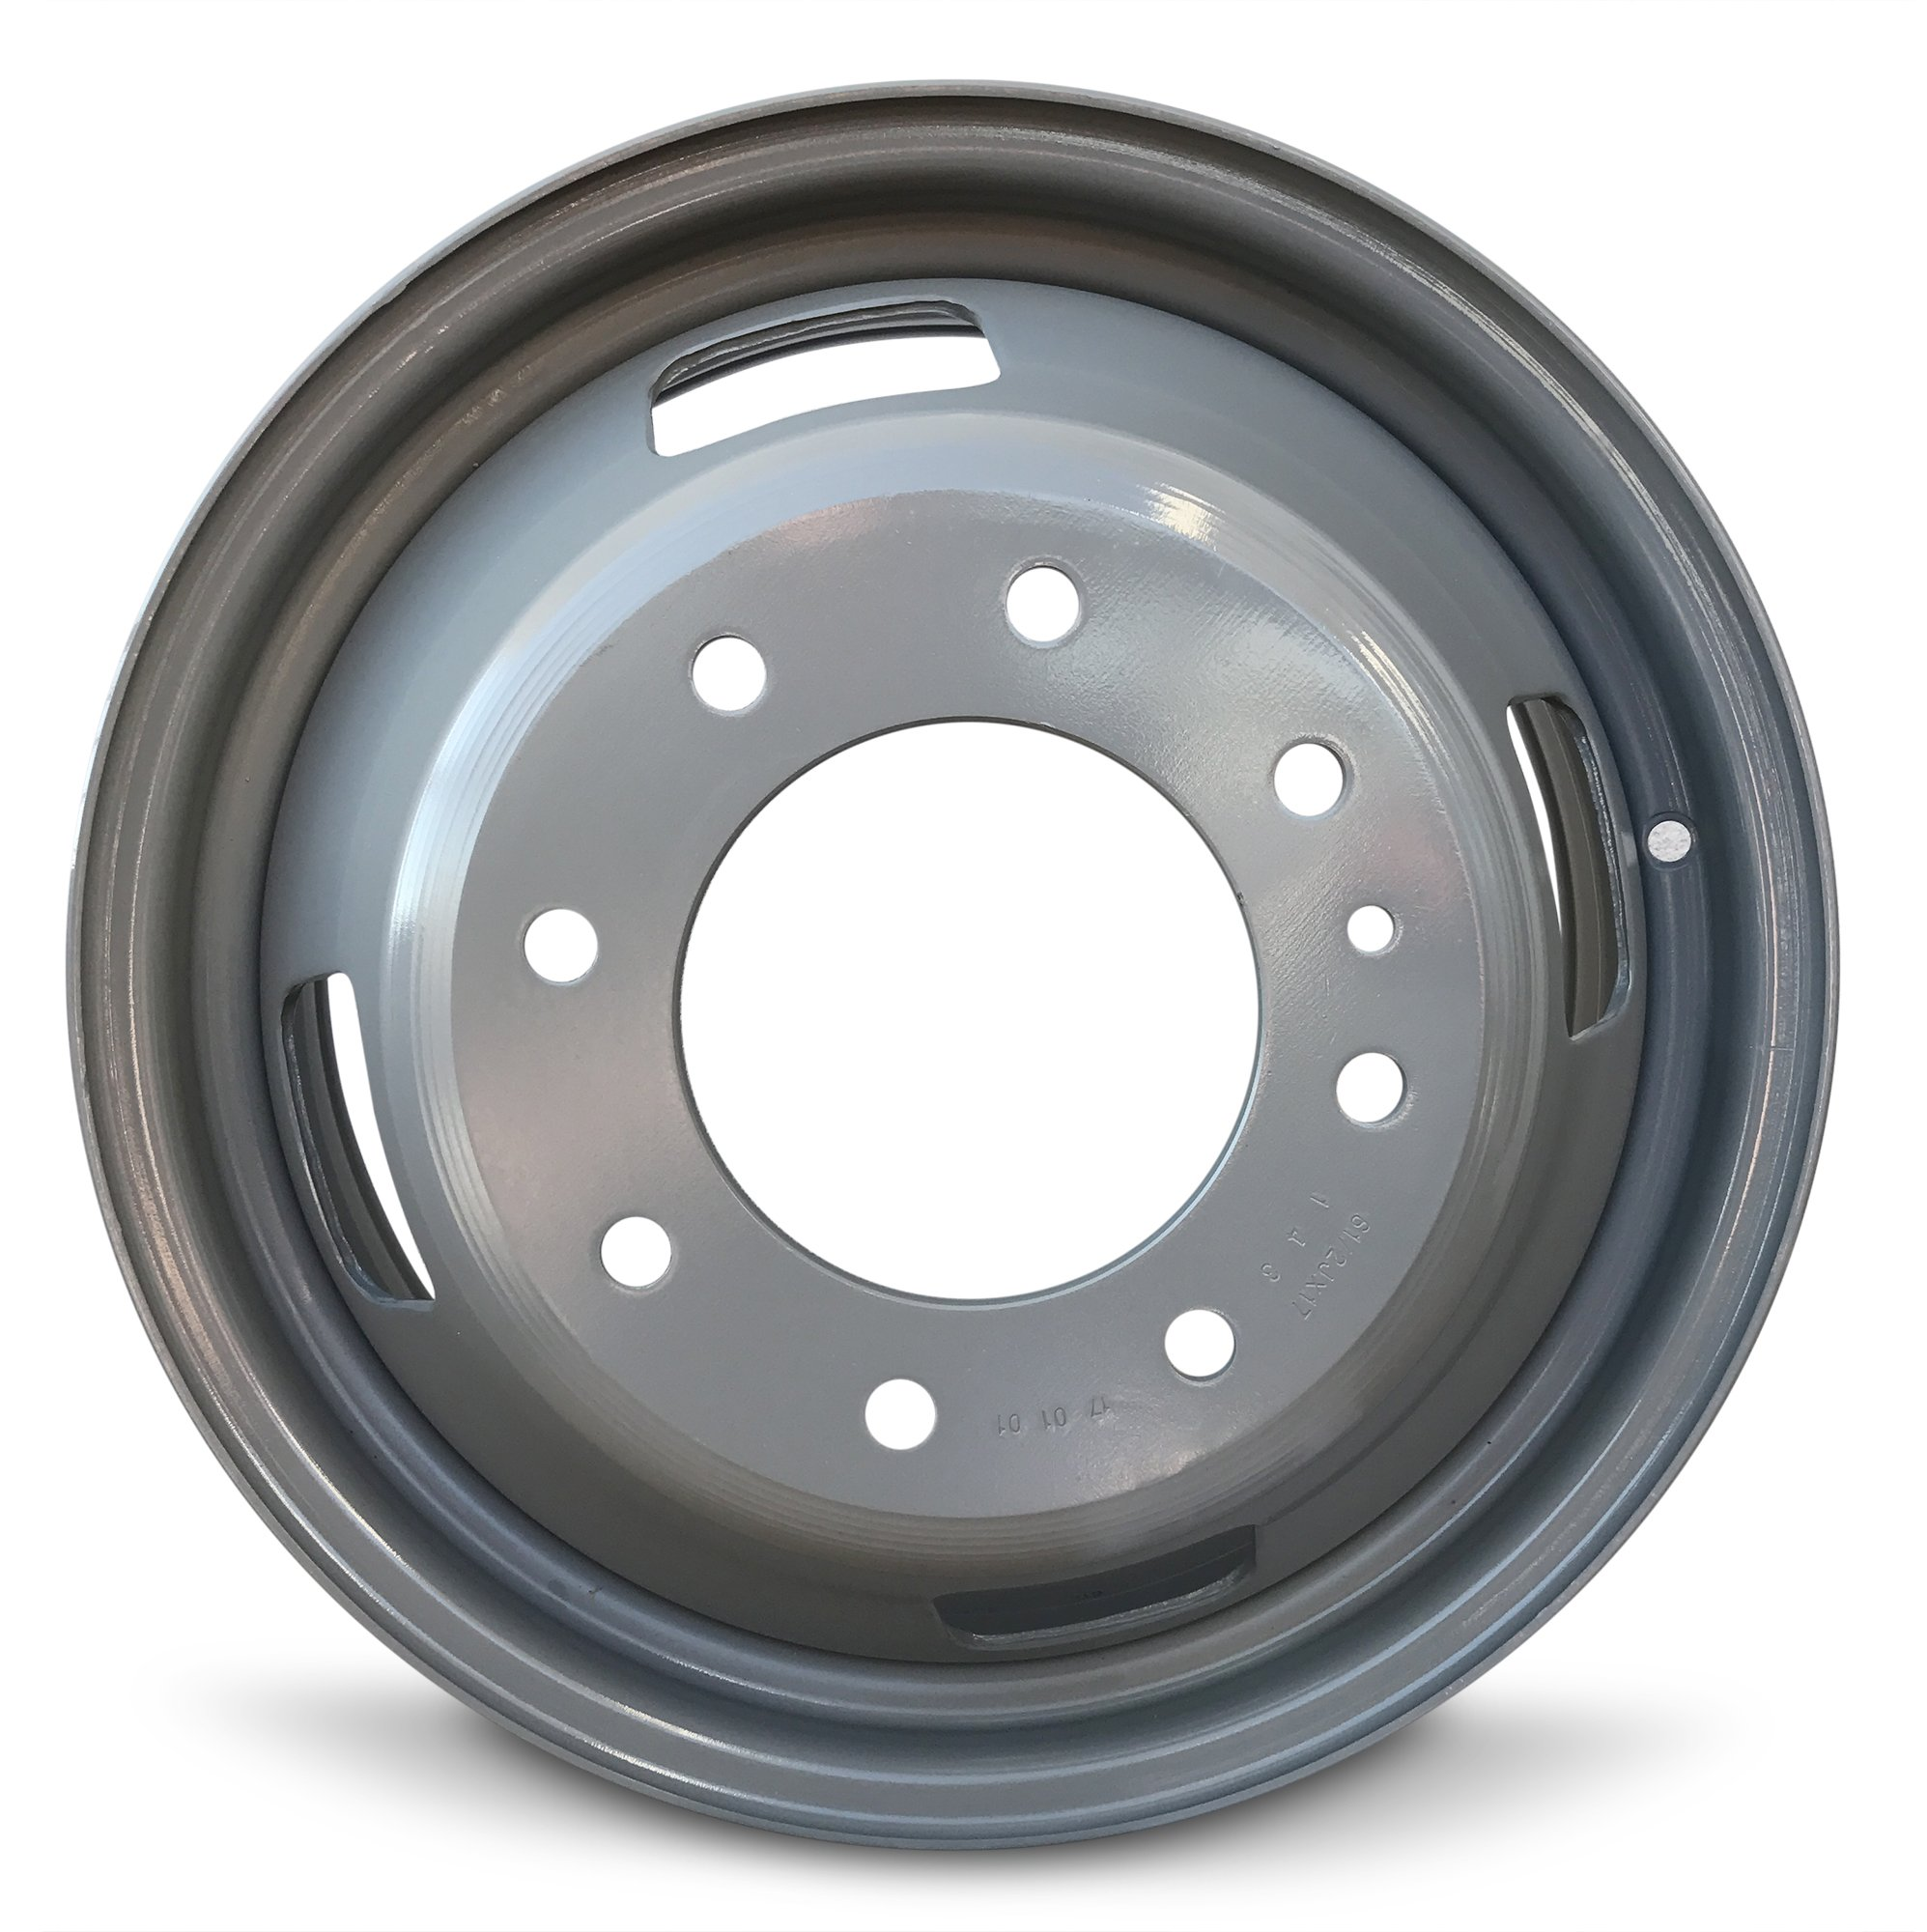 New 17 Inch Ford F350SD DRW Dually 8 Lug Replacement Wheel Rim 17x6.5 Inch 8 Lug 142mm Center Bore 143mm Offset